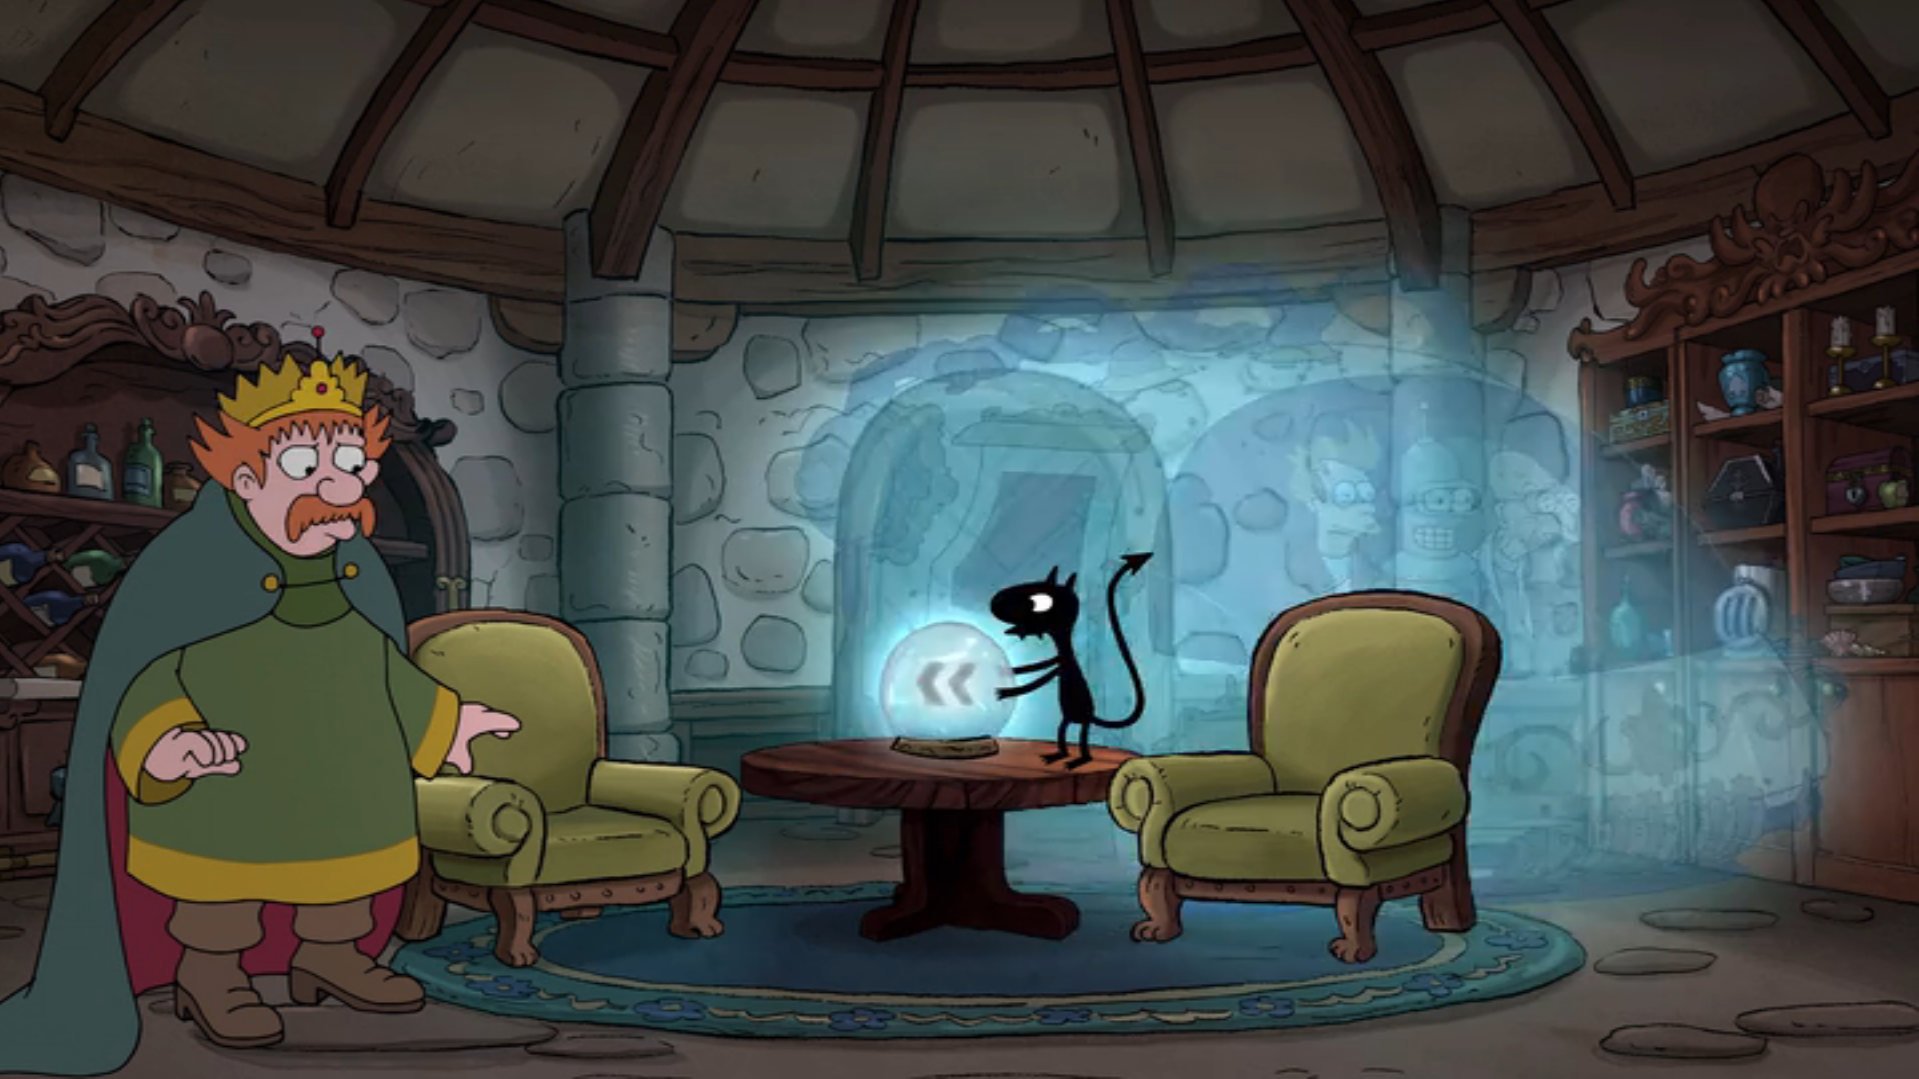 Found some familiar faces while watching the new show Disenchantment!